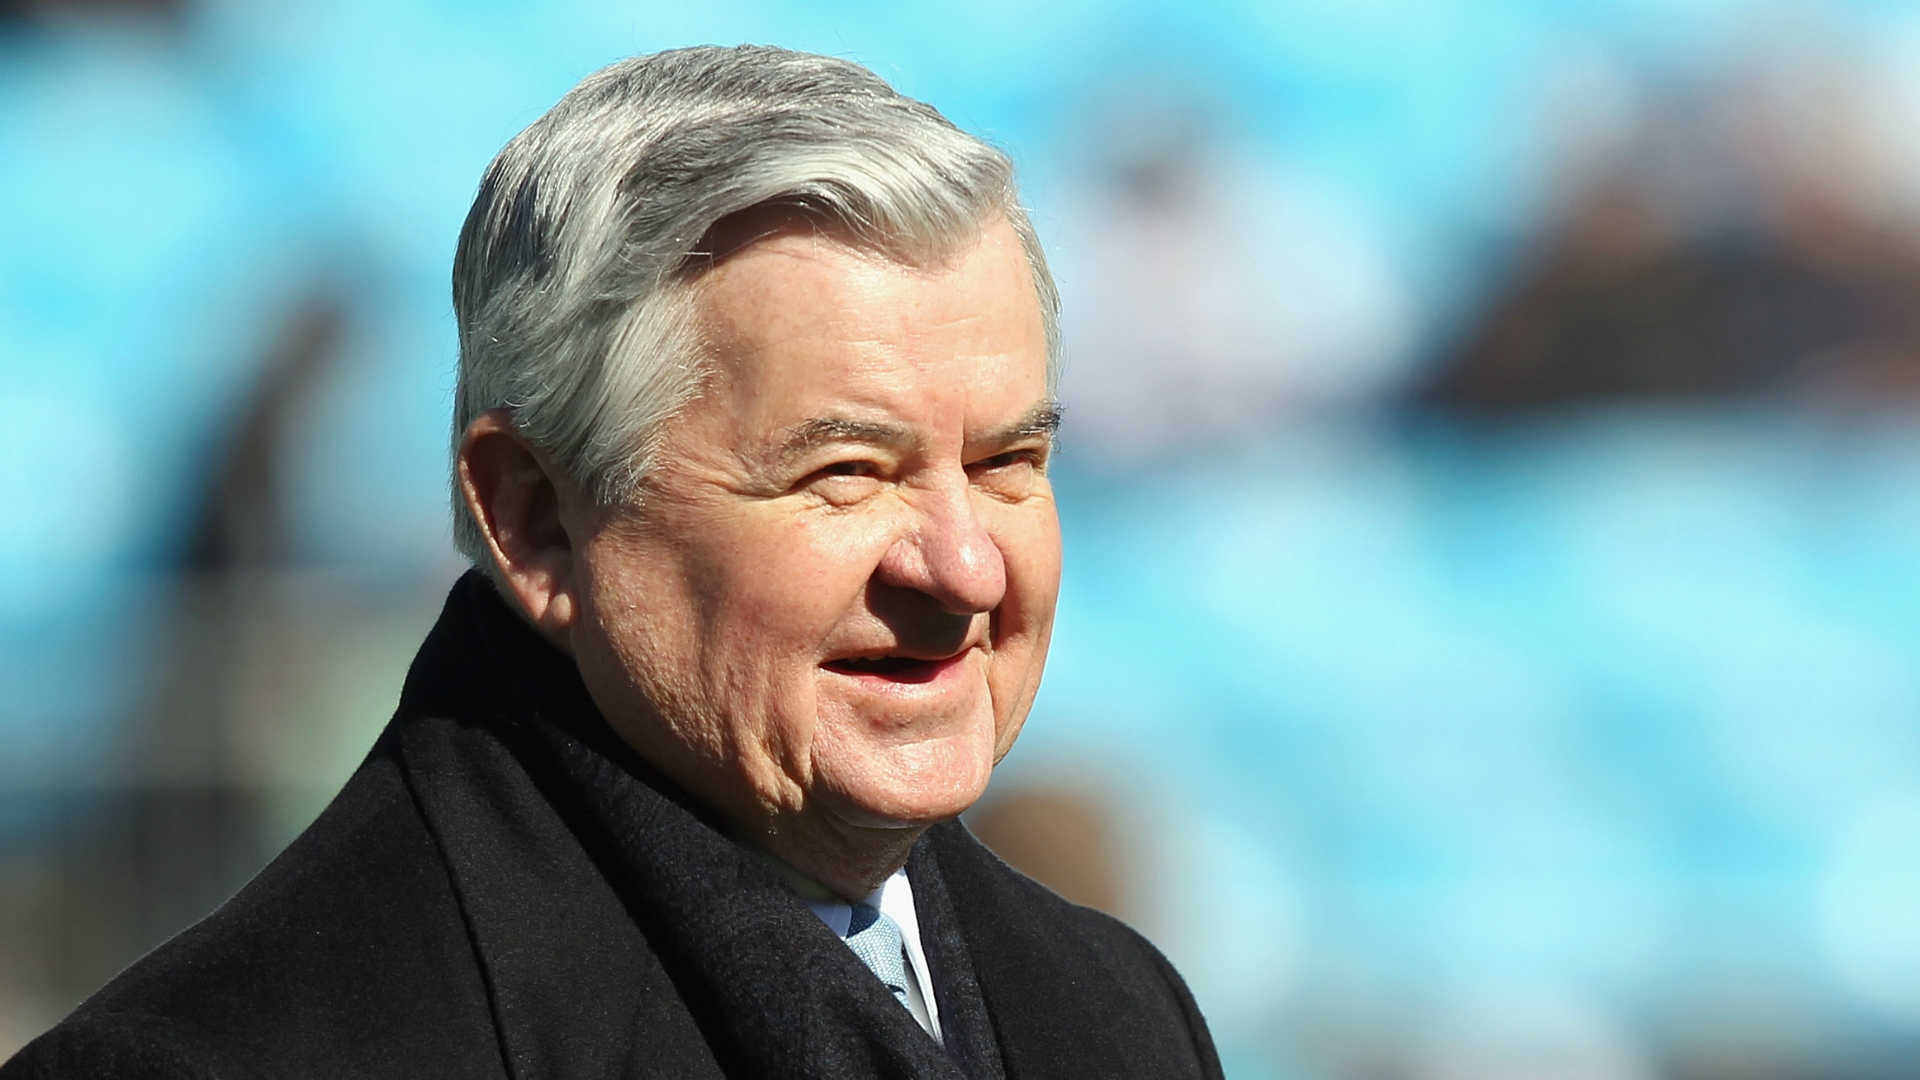 Jerry-Richardson-06202015-US-News-Getty-FTR